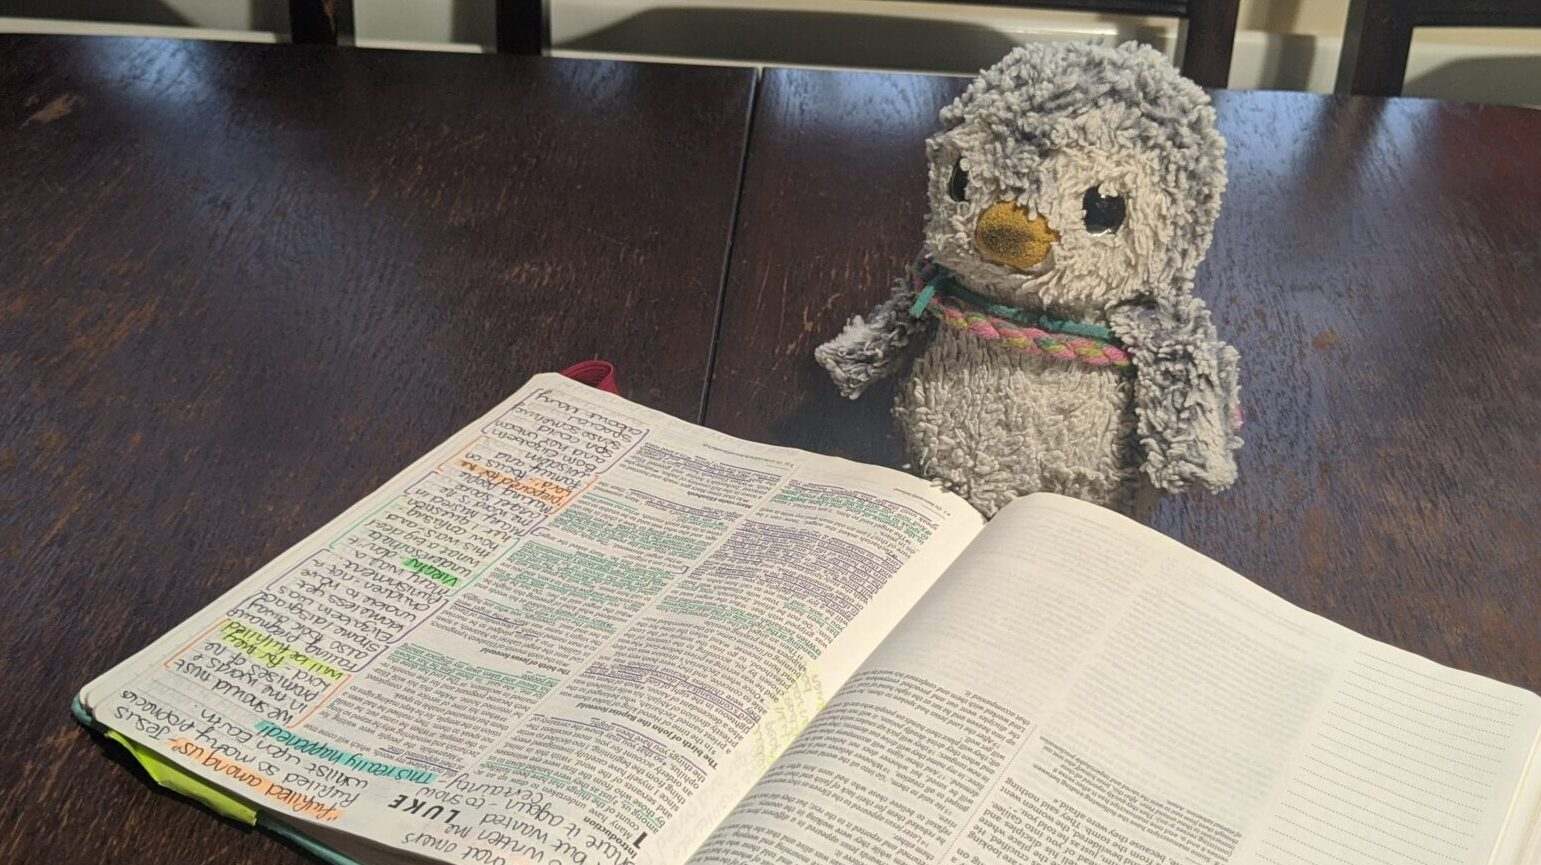 Arnold reading the Bible